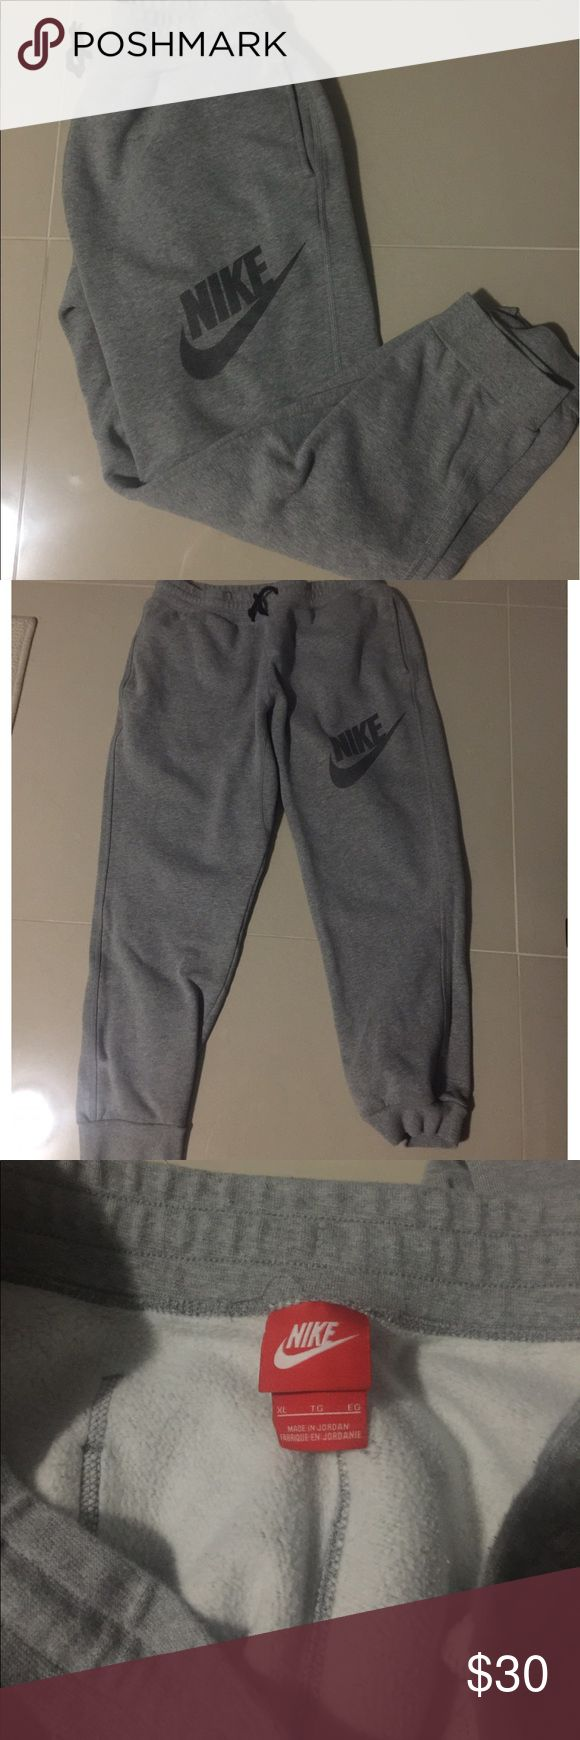 Men's Nike jogger sweatpants Men's Nike jogger sweatpants. Excellent pre-owned condition. Very comfortable with drawstring still intact. Nike Pants Sweatpants & Joggers